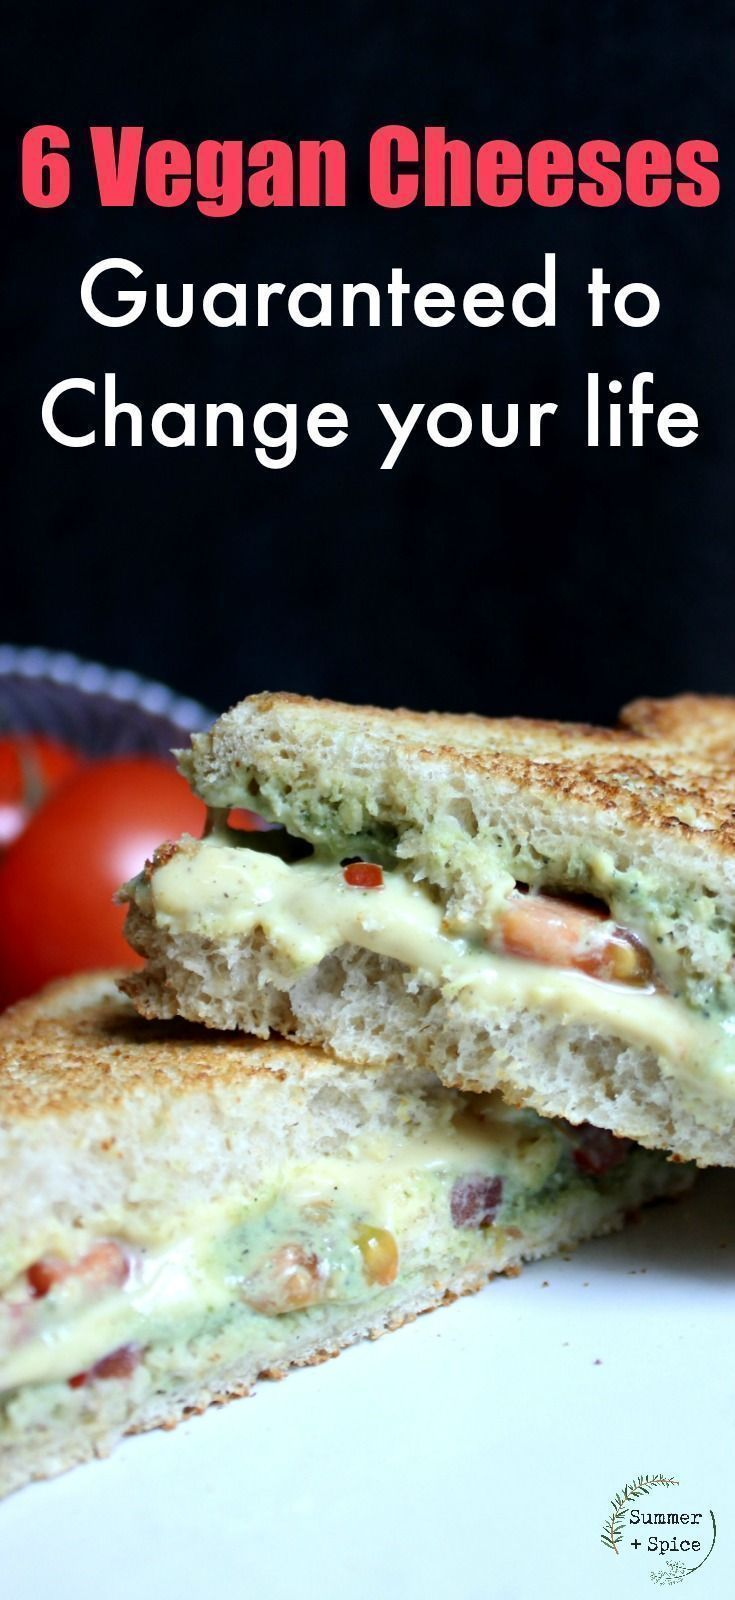 6 Vegan Cheese Recipes Guaranteed to Change your Life images